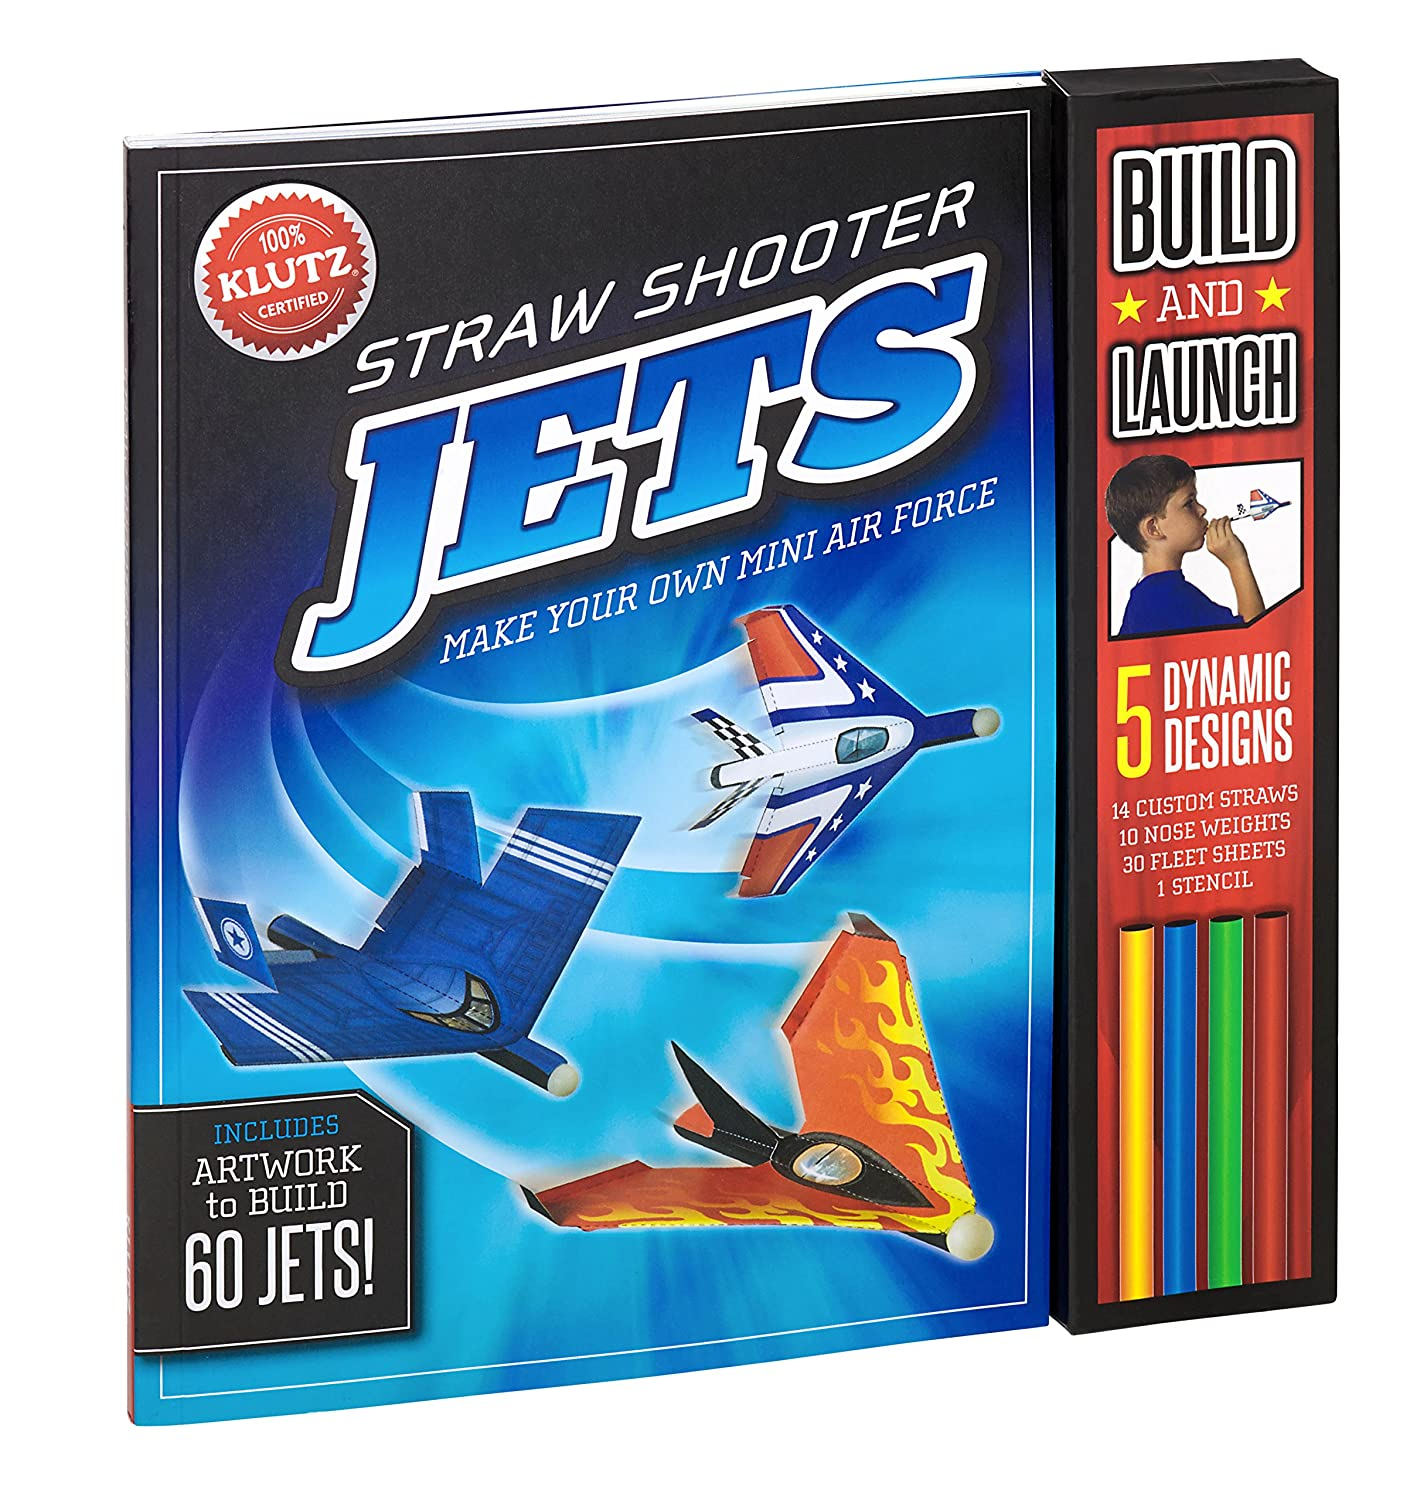 Straw-Shooter Jets Klutz 564779 Crafts & Hobbies Novelty & Activity Books